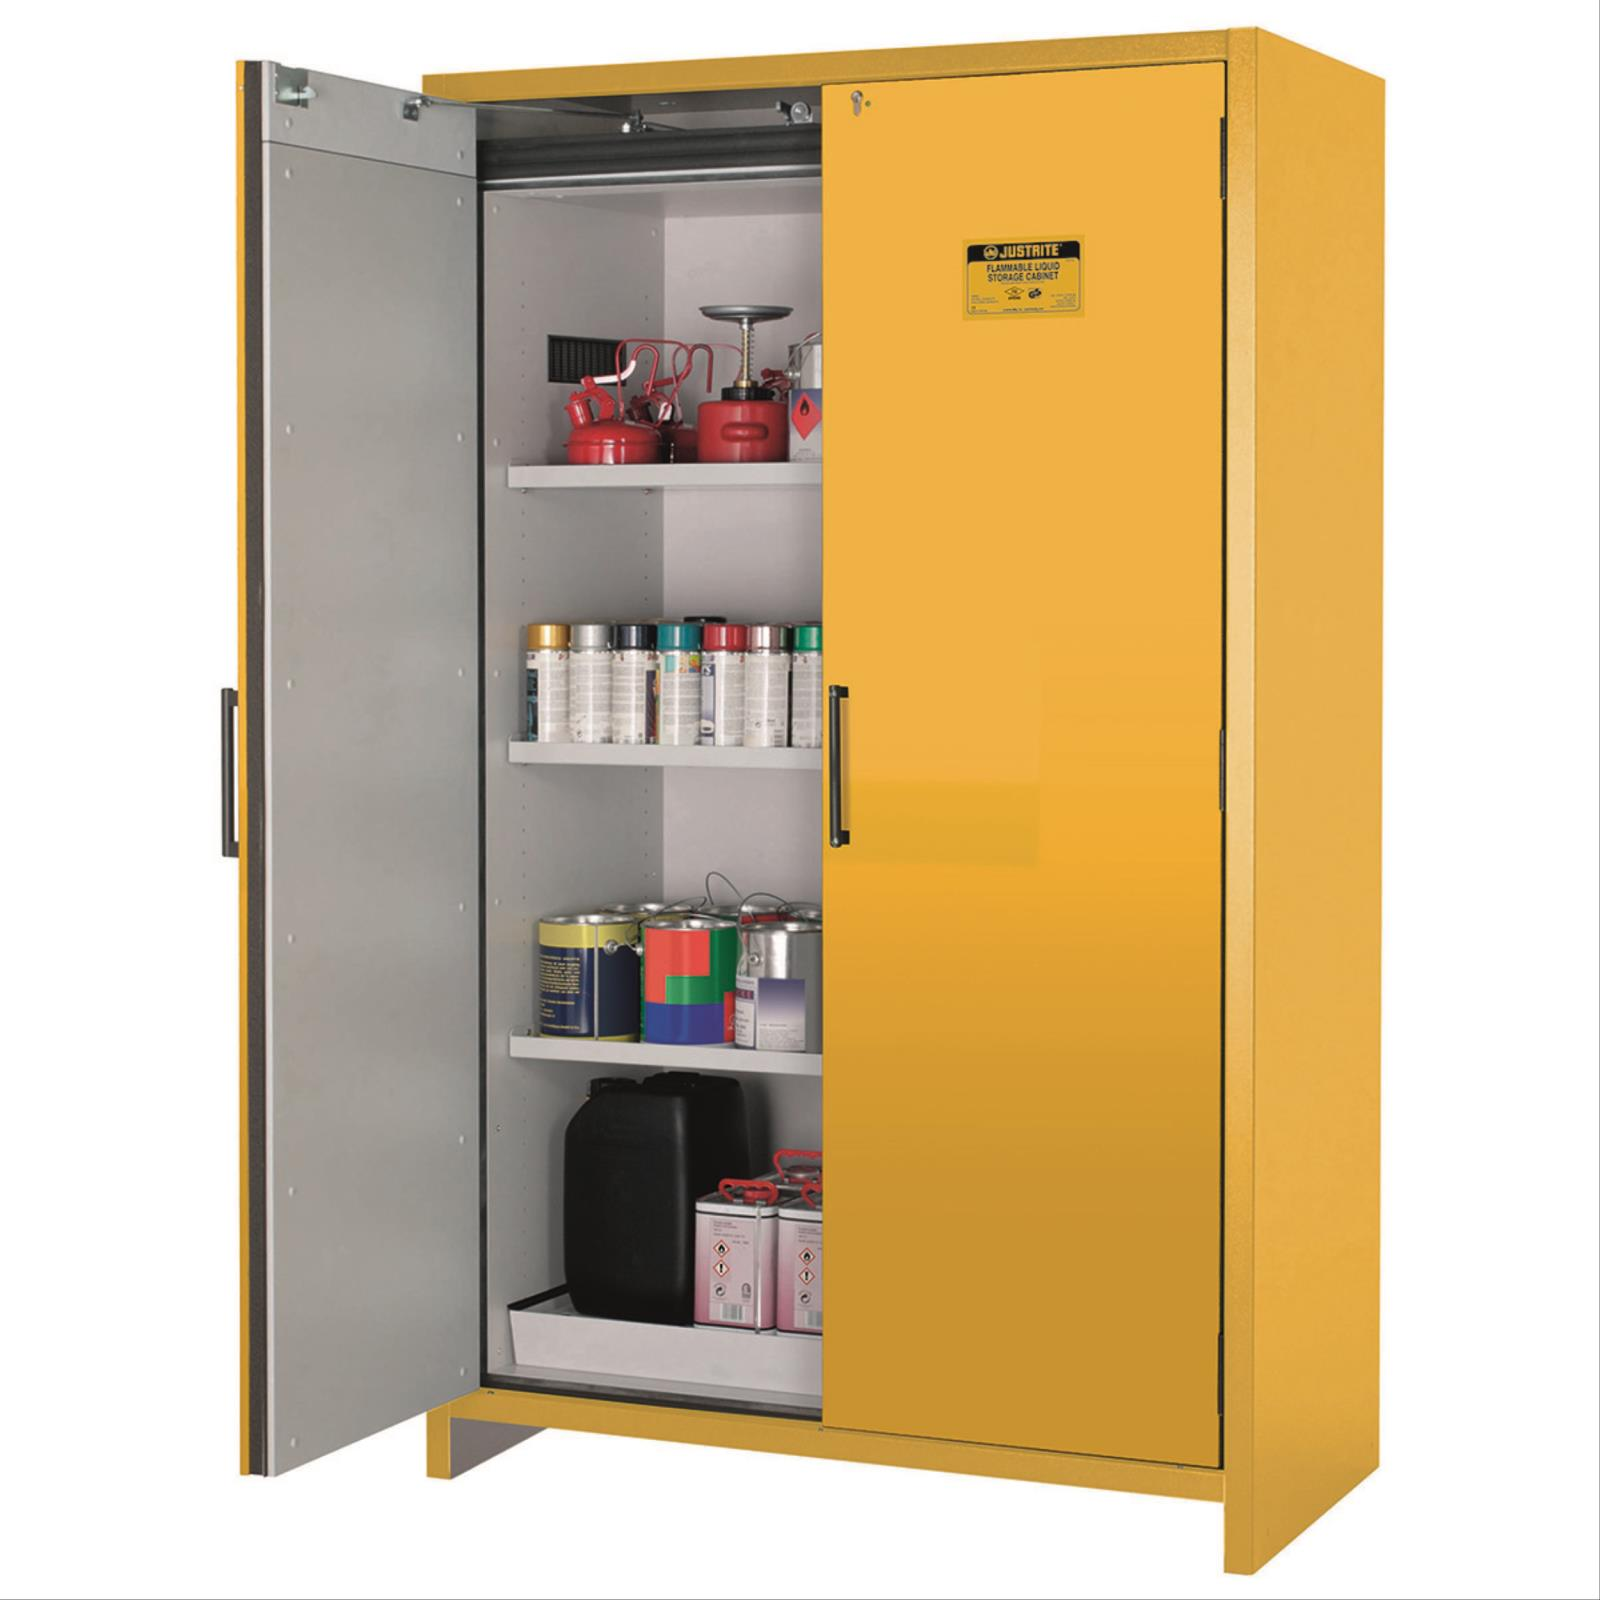 EN Flammable Safety Cabinet